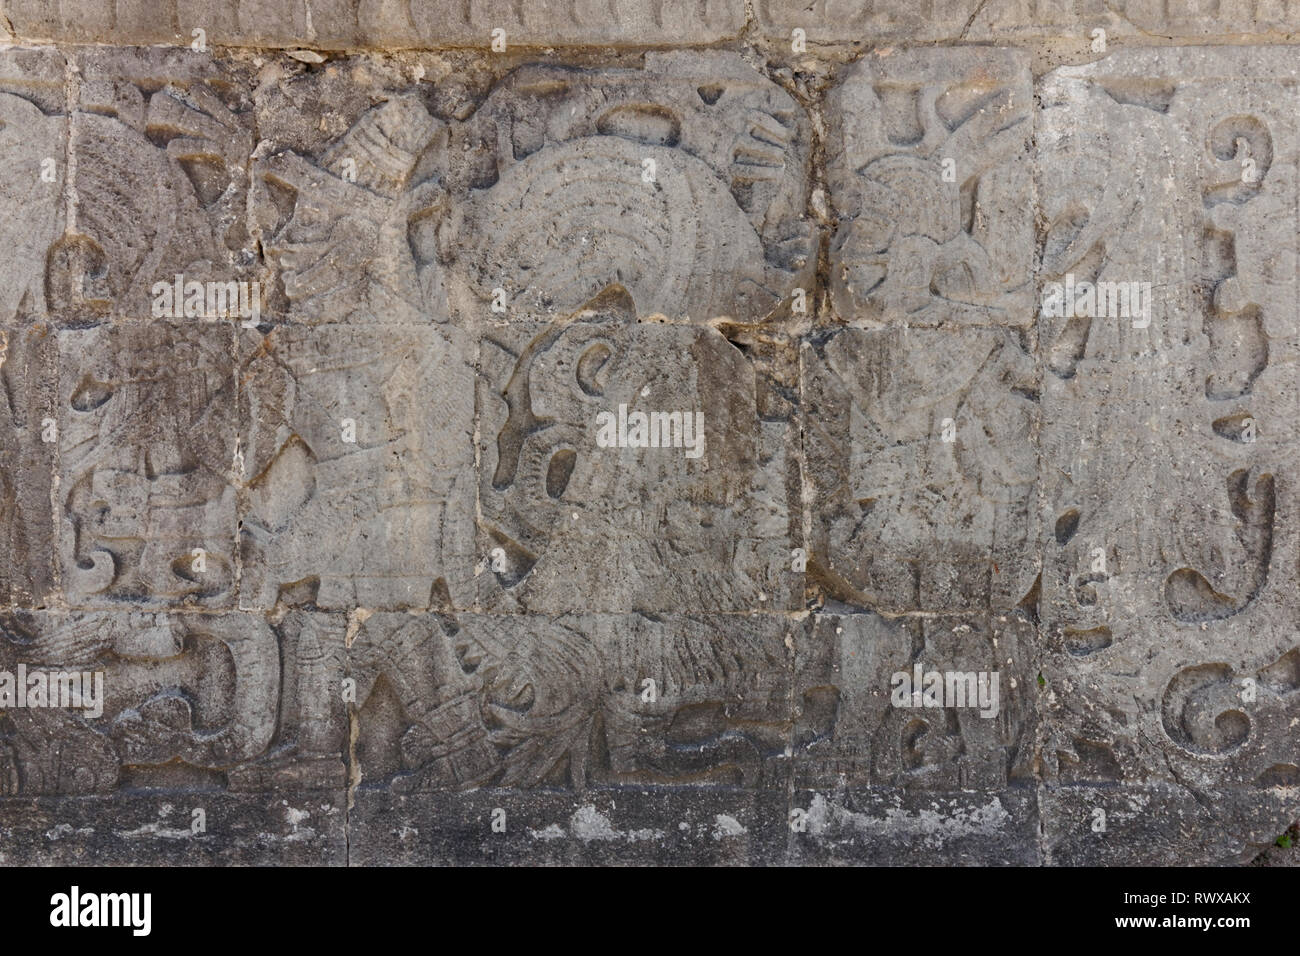 Close up of a Mayan carved stone panel in Chechen Itza possibly depicting a King. - Stock Image